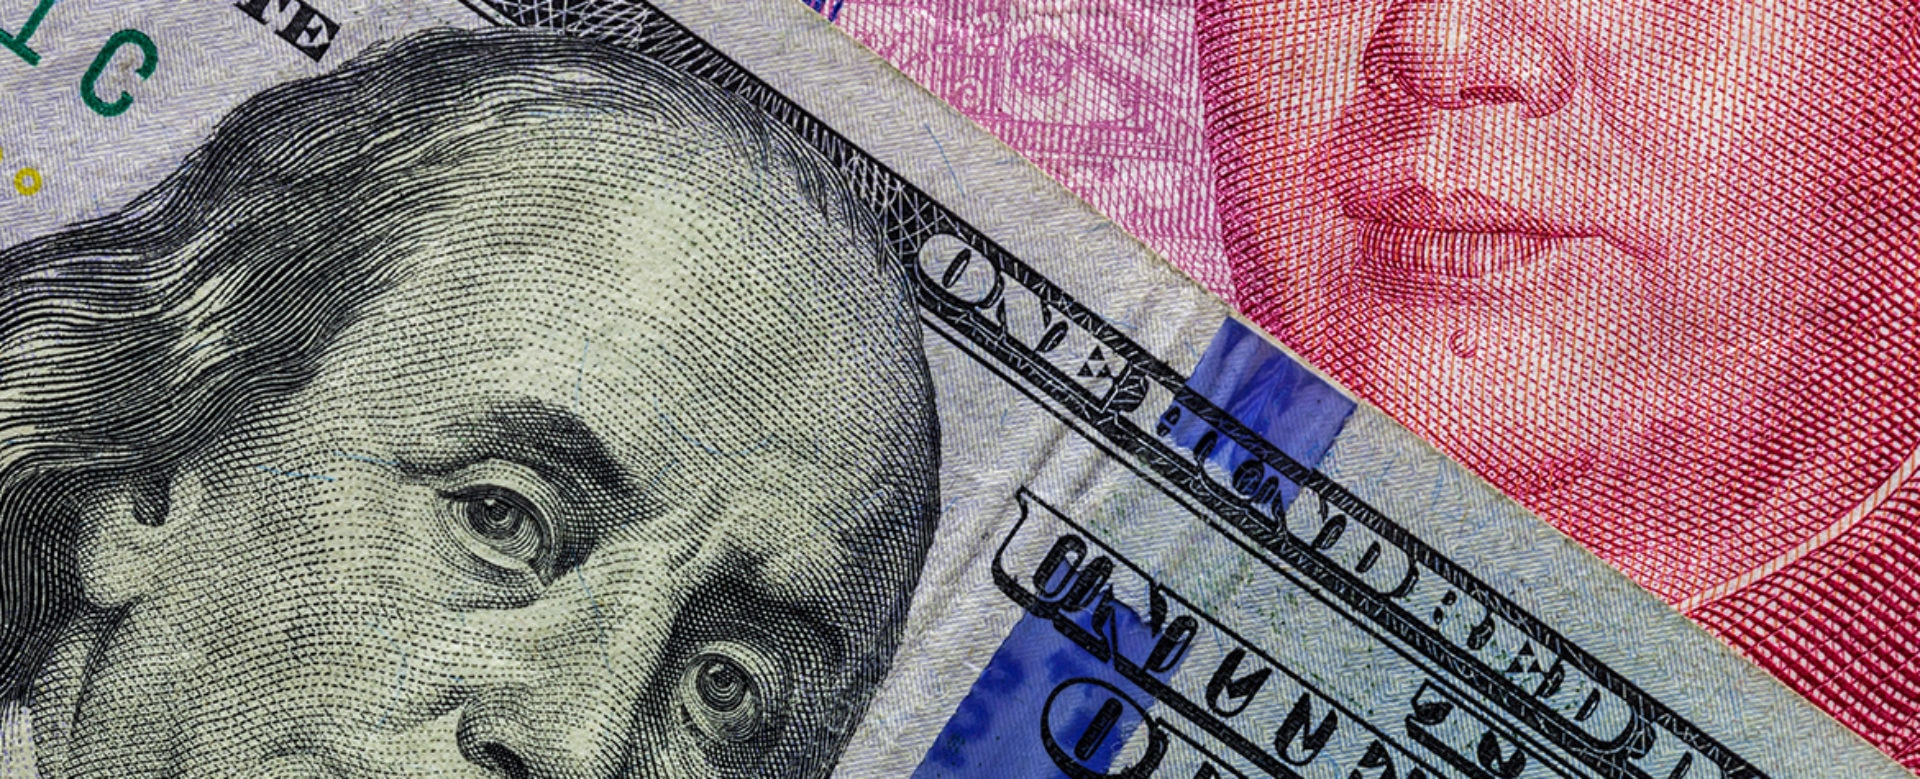 """the currency war between china and the united states The question """"how could war start between china and the united states"""" has, quite reasonably, dominated much strategic analysis of east asian politics."""